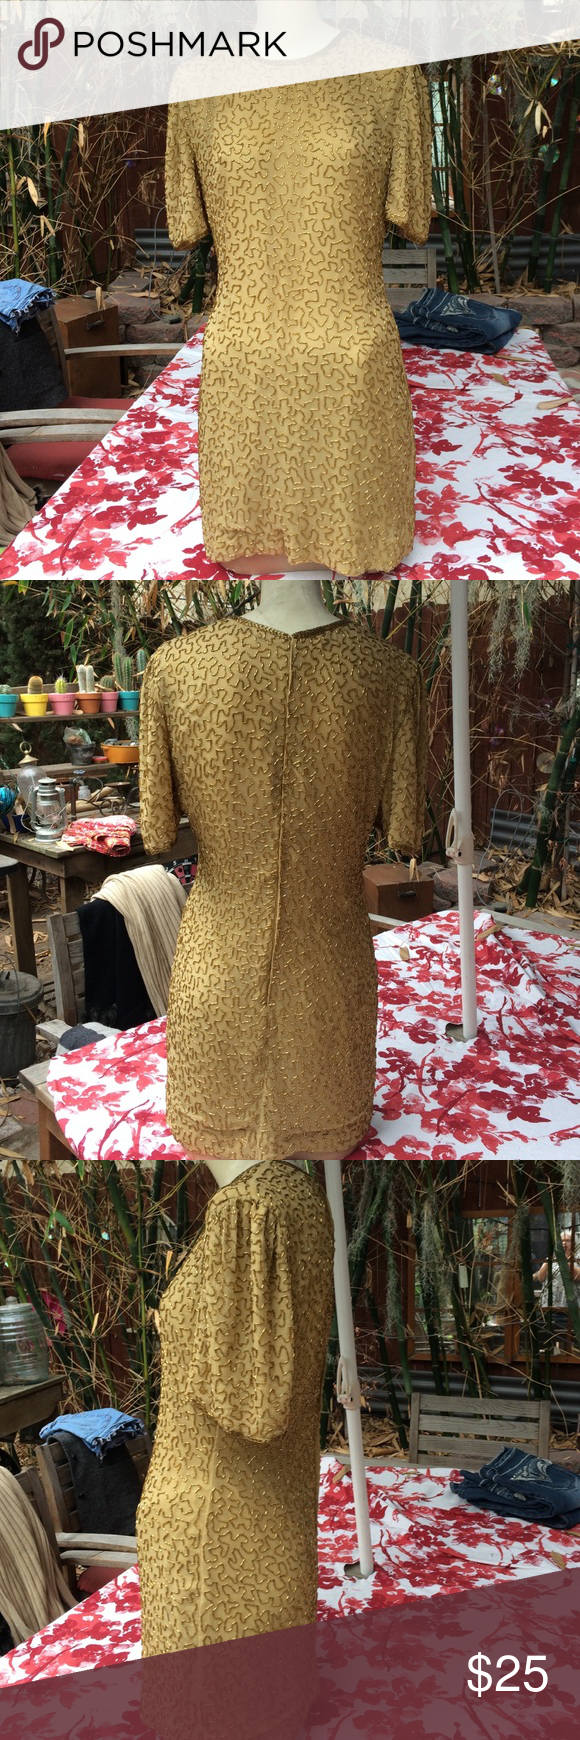 Vintage beaded 100% pure silk mini dress or tunic Vintage beaded 100% pure silk mini dress or tunic just beautiful. Size PS. Made in India loved and used. Designed by Lawrence Kazan. The ham has been repaired as gently as possible Lawrence Kazar Dresses Mini